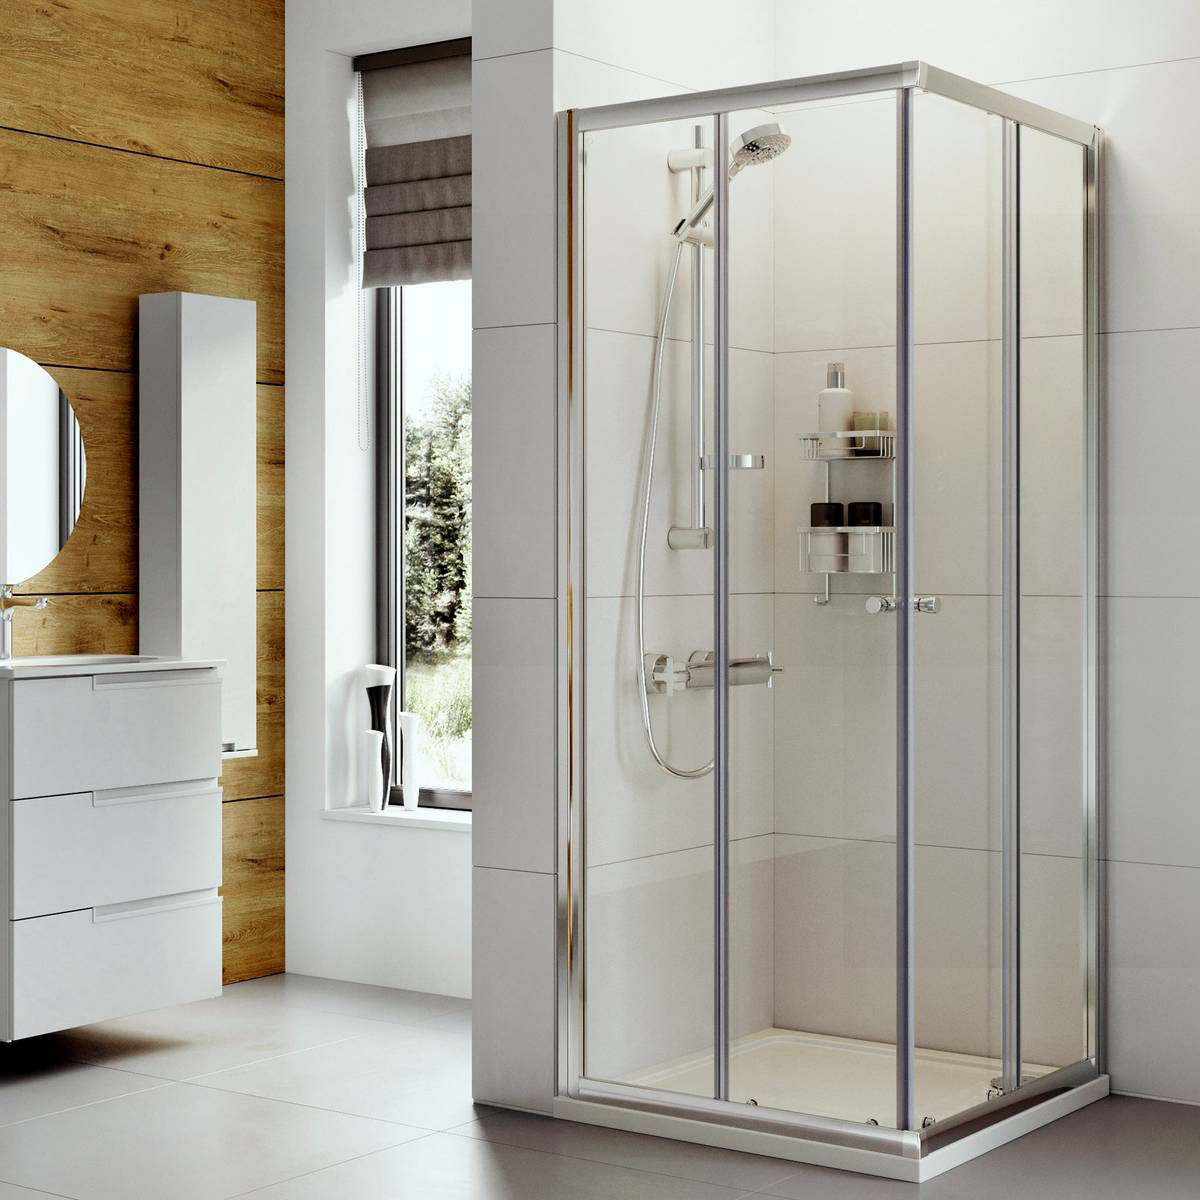 Roman Haven Corner Entry Shower Enclosure Uk Bathrooms